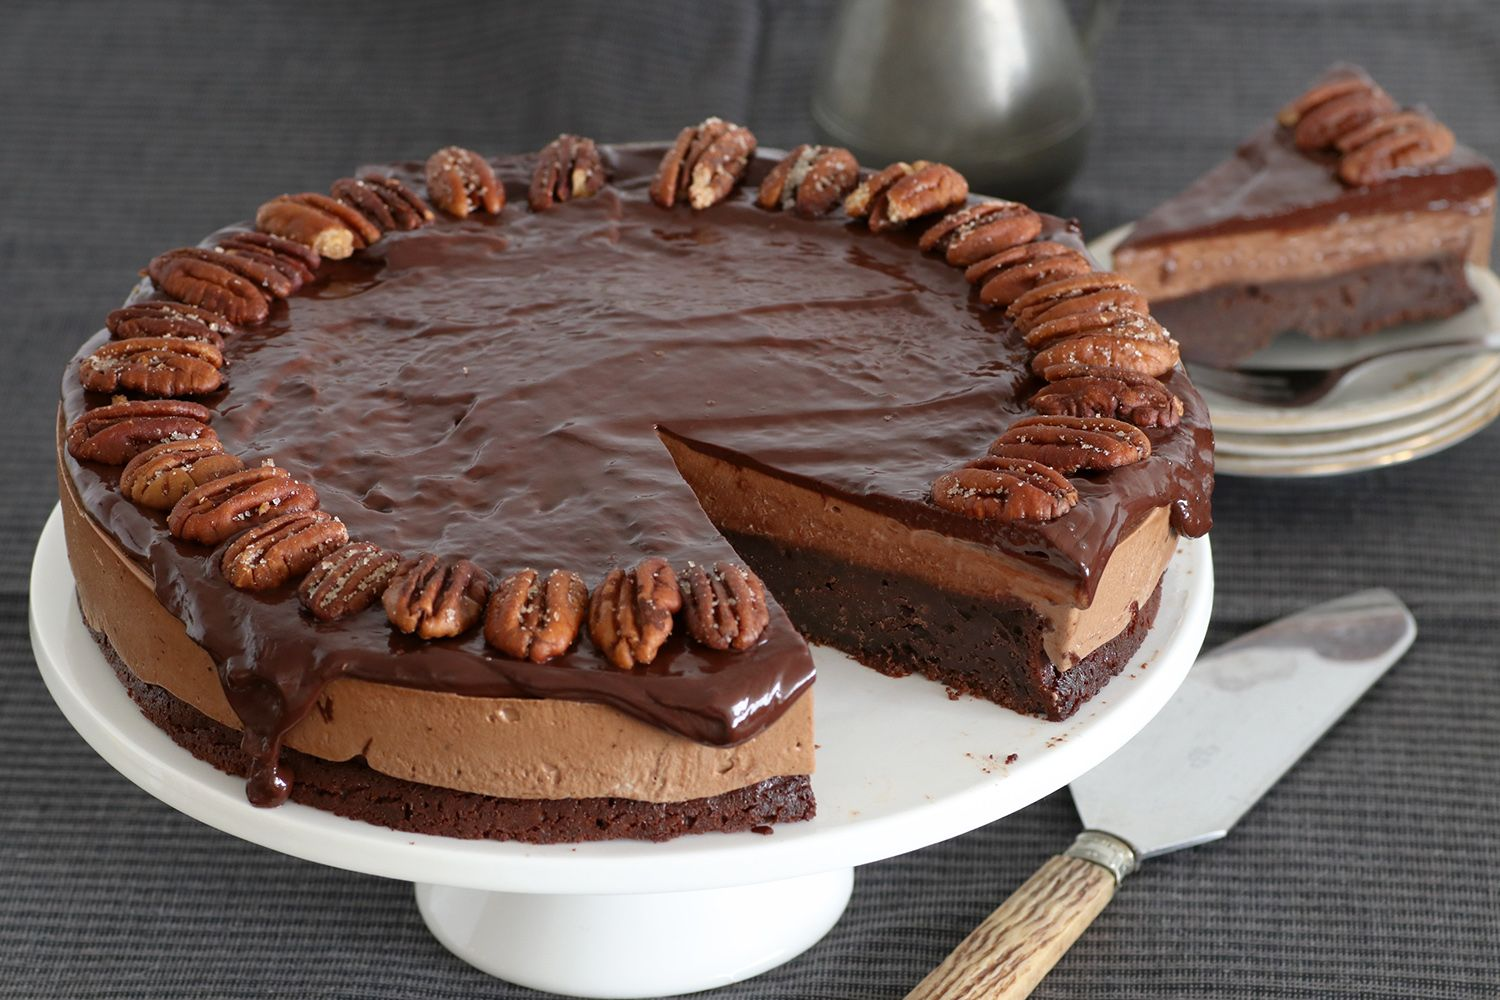 Gluten Free Chocolate Cake with Pecans